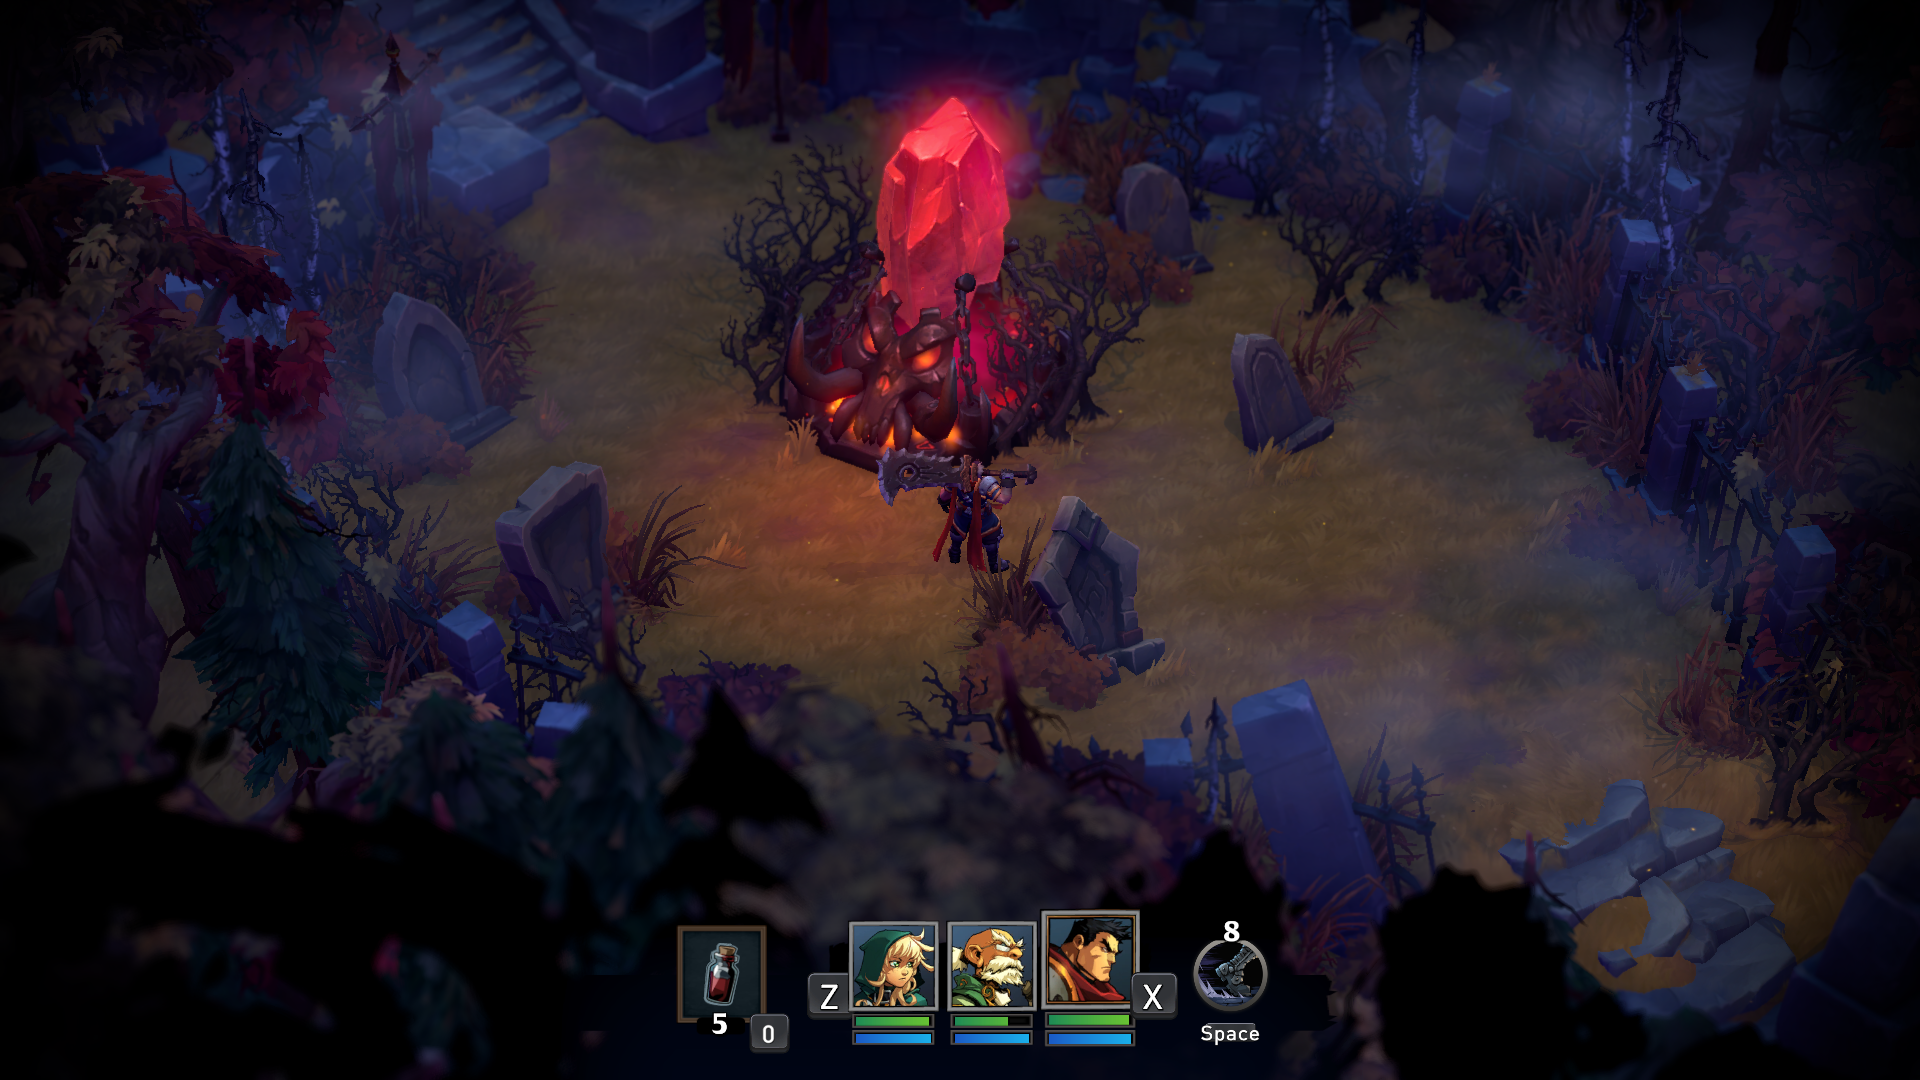 Battle_Chasers_Nightwar_9.png